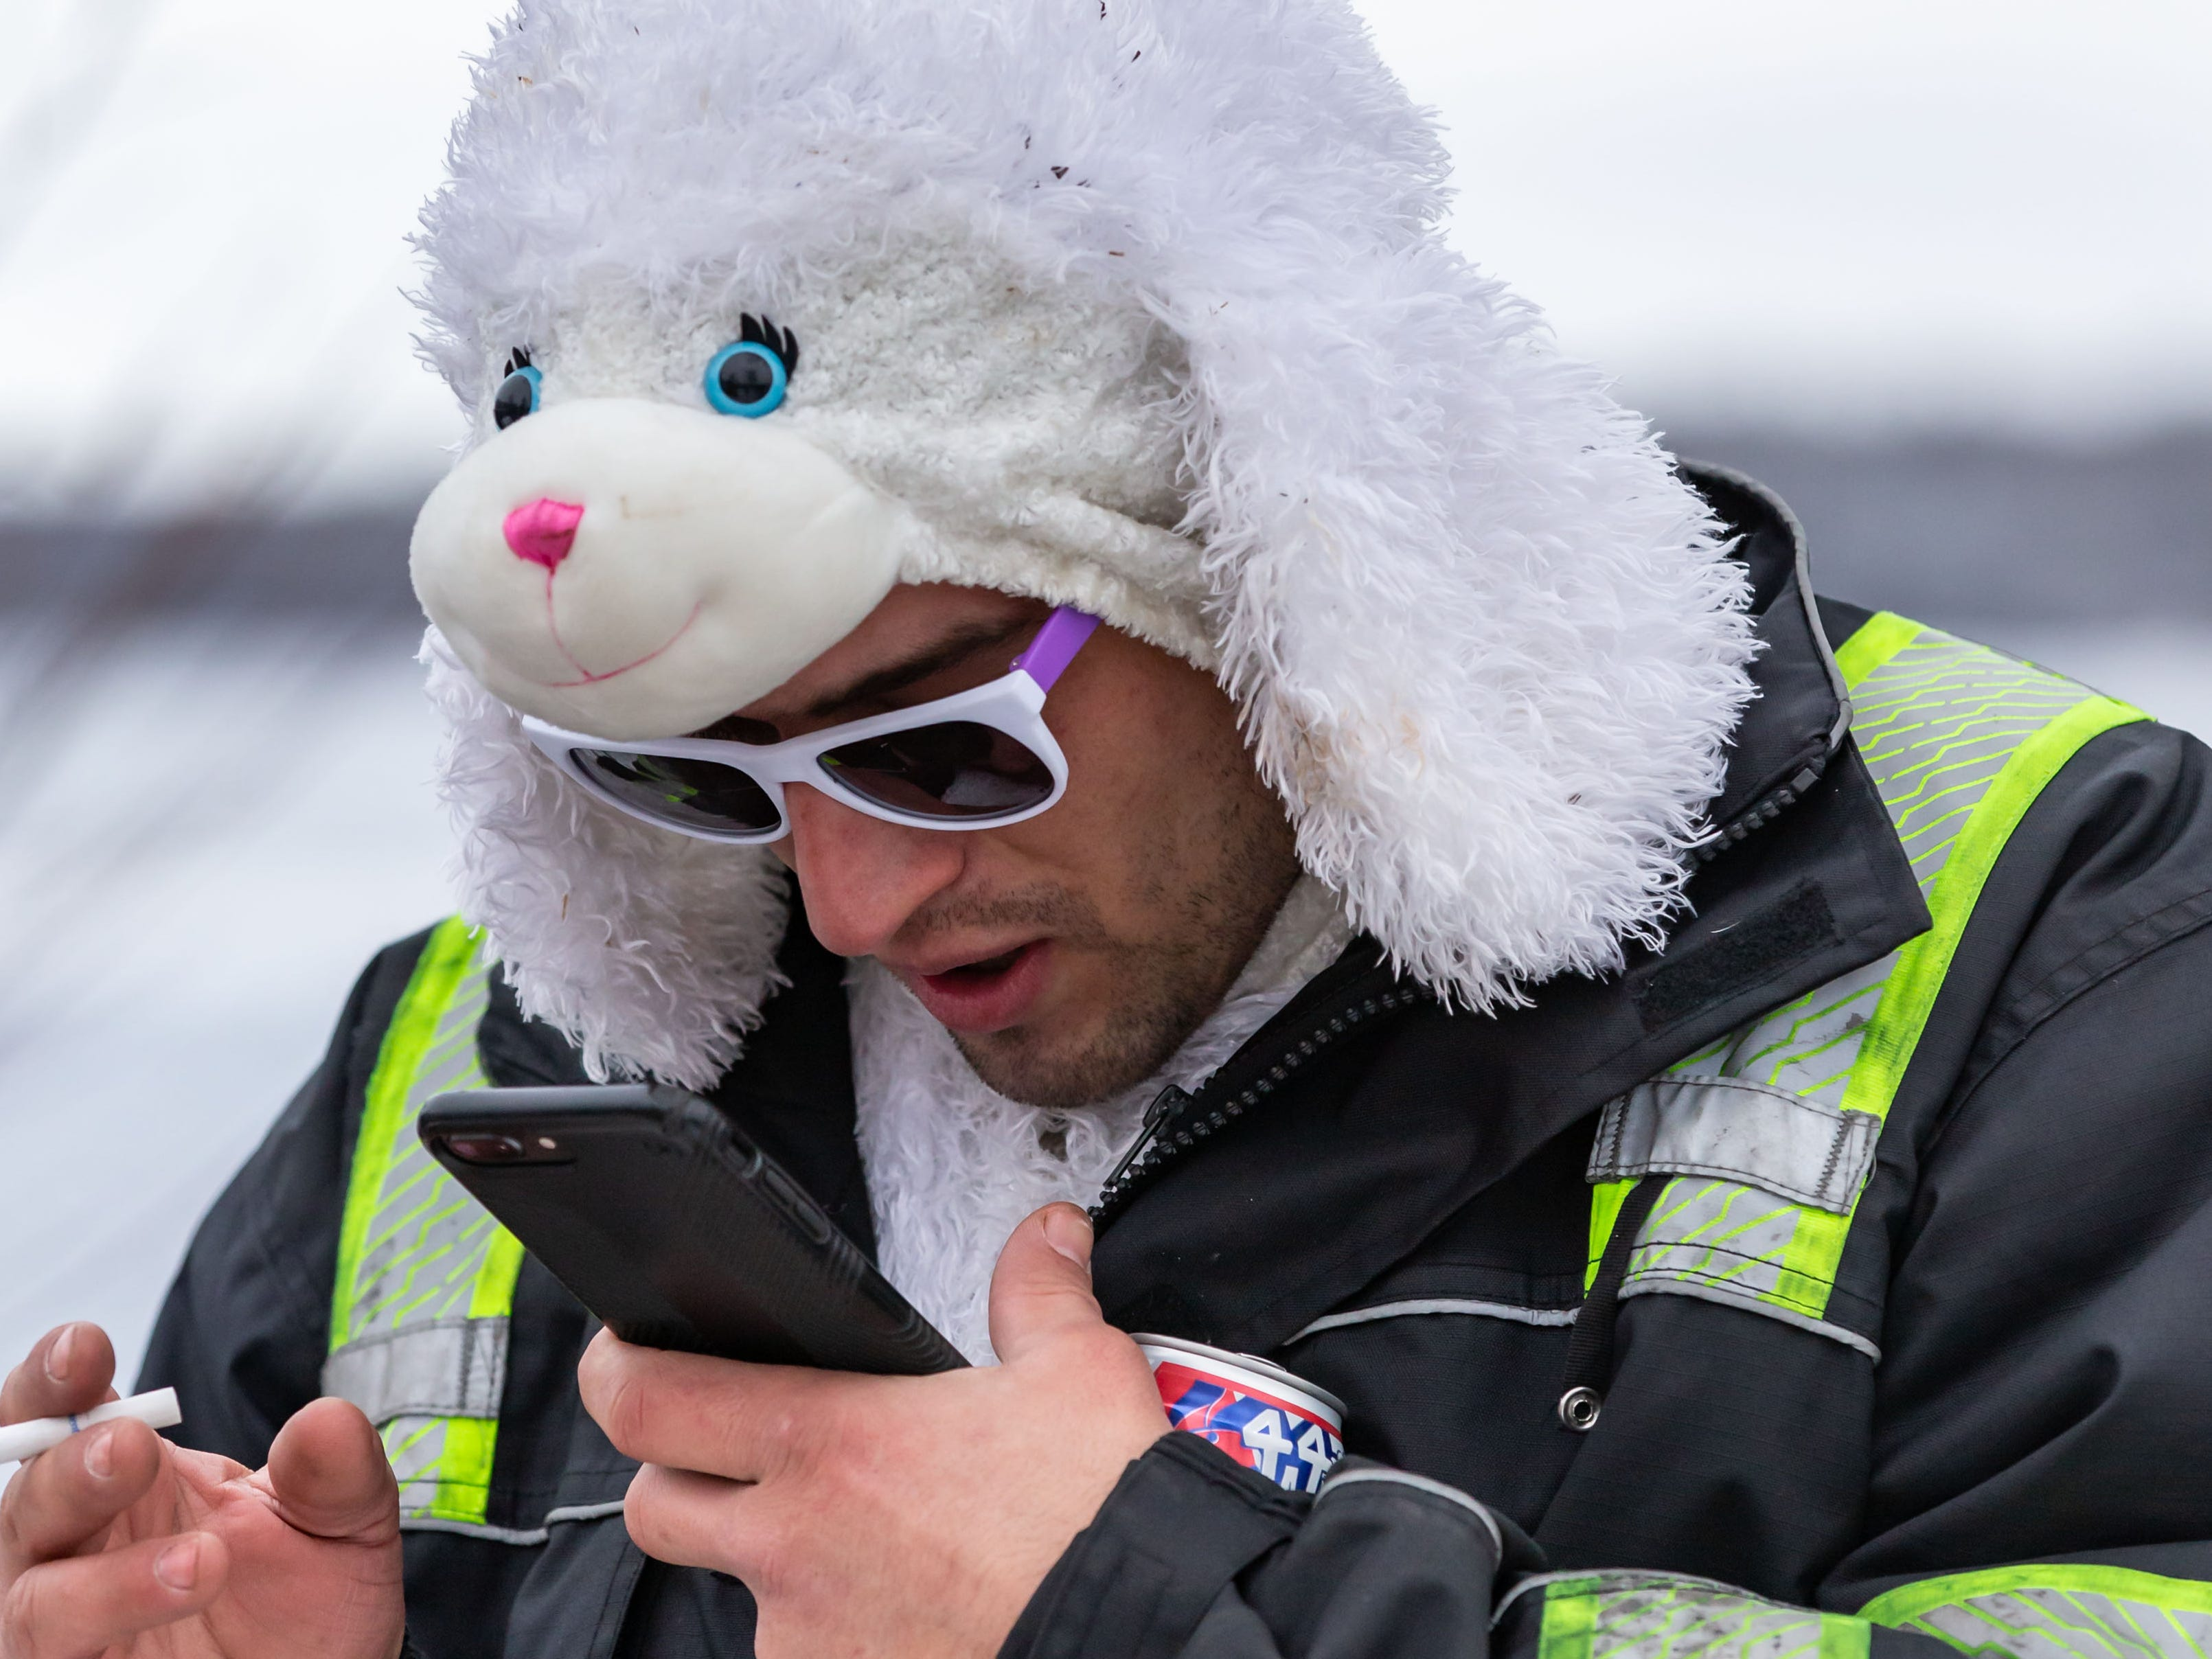 Tyler Bentley texts his next of kin prior to participating in the annual Polar Plunge at Panga Bar & Grill in Oconomowoc on Tuesday, Jan. 1, 2019. Funds raised from this year's plunge will benefit research efforts of the Alzheimer's Association.